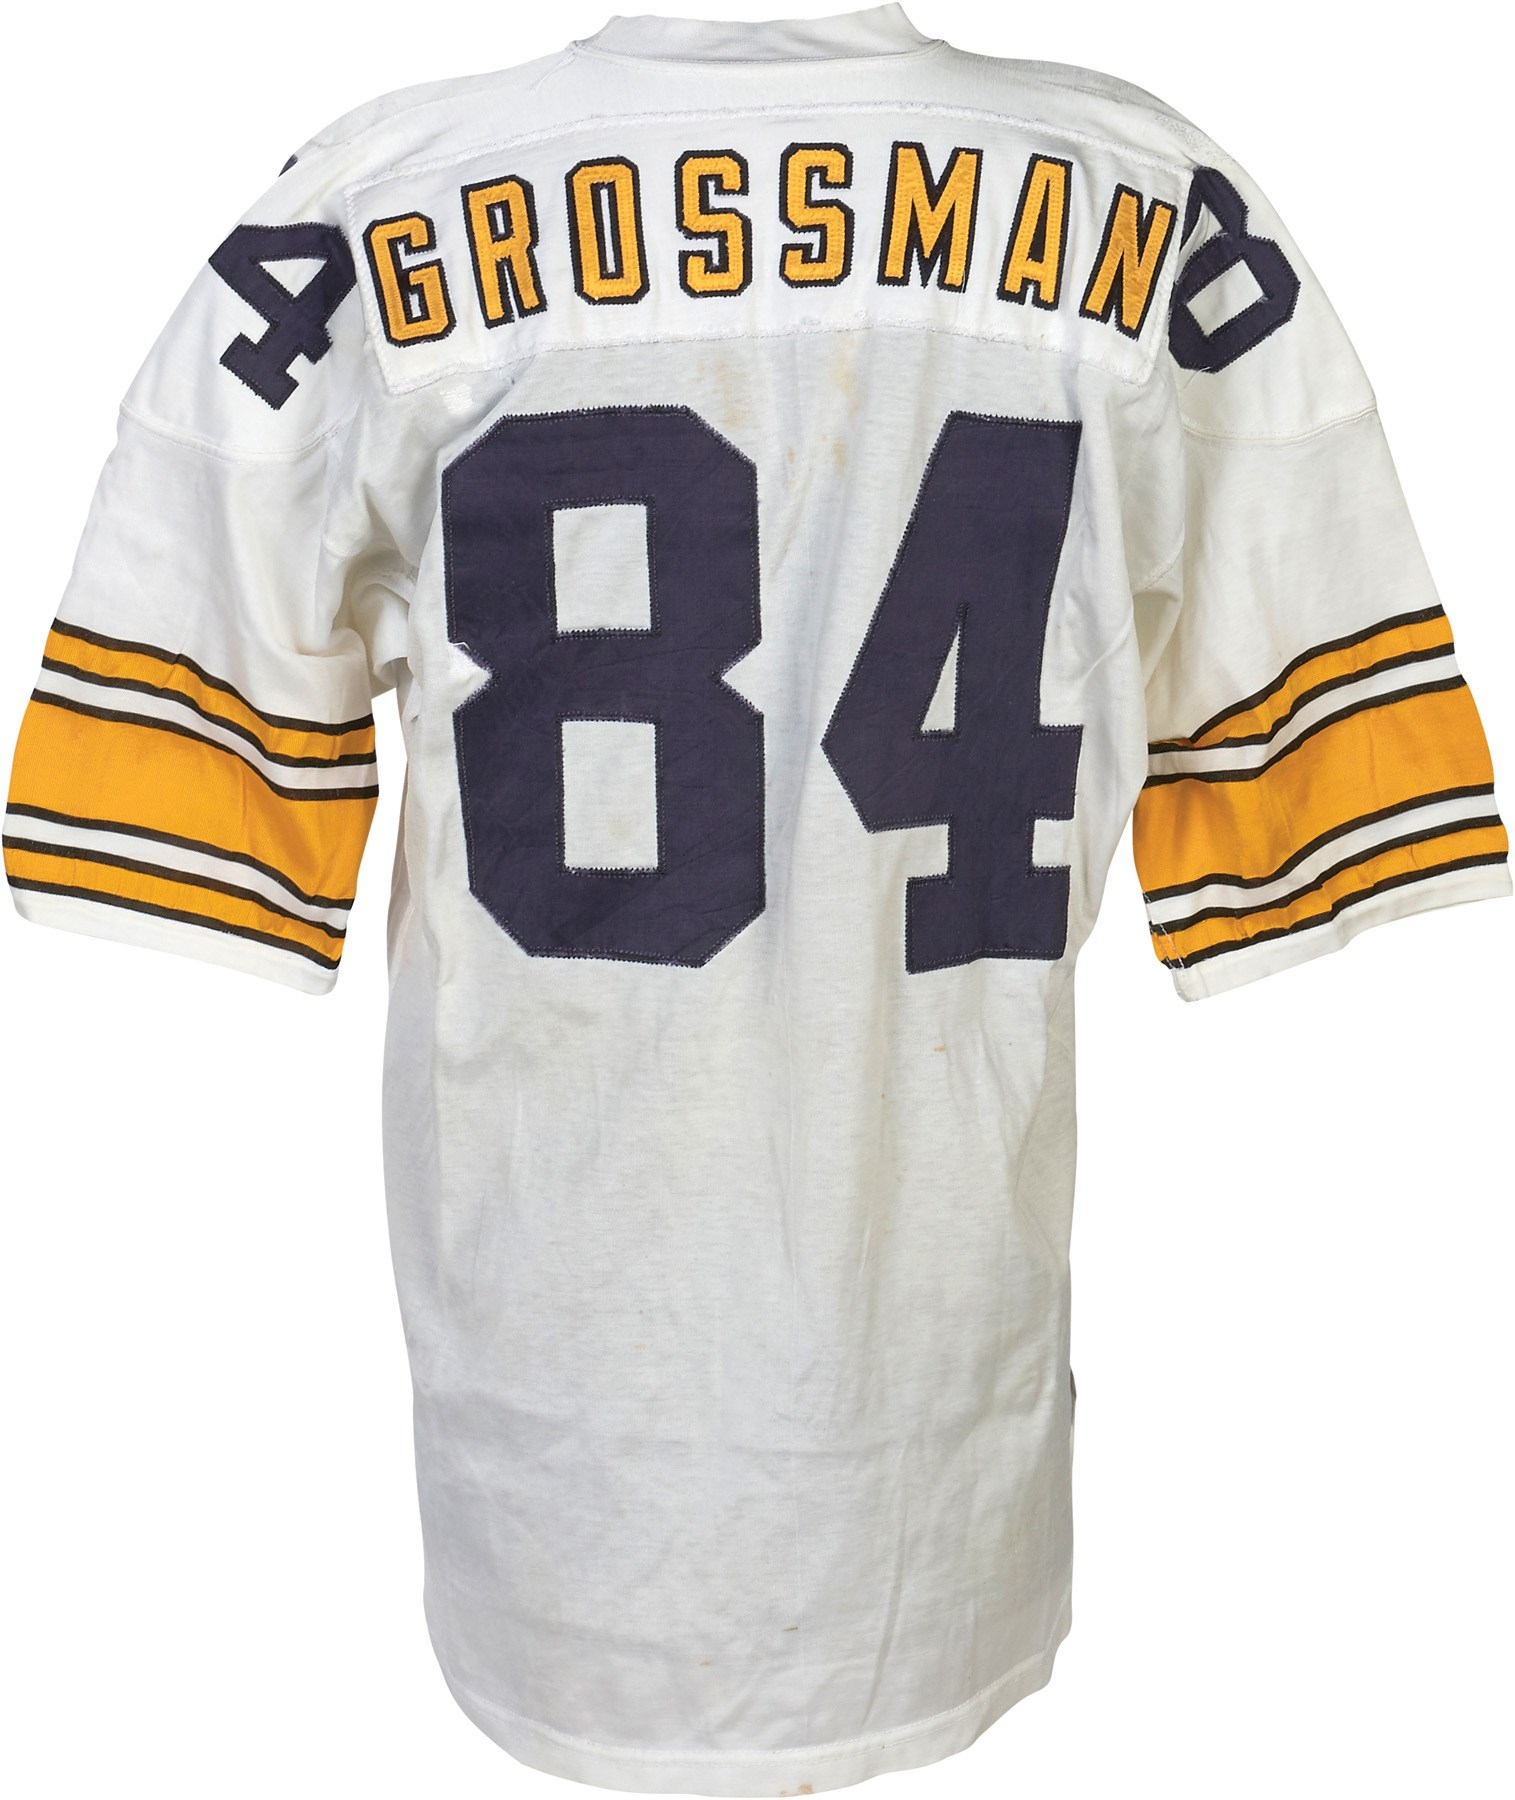 1973 Randy Grossman Pittsburgh Steelers Game Worn Jersey